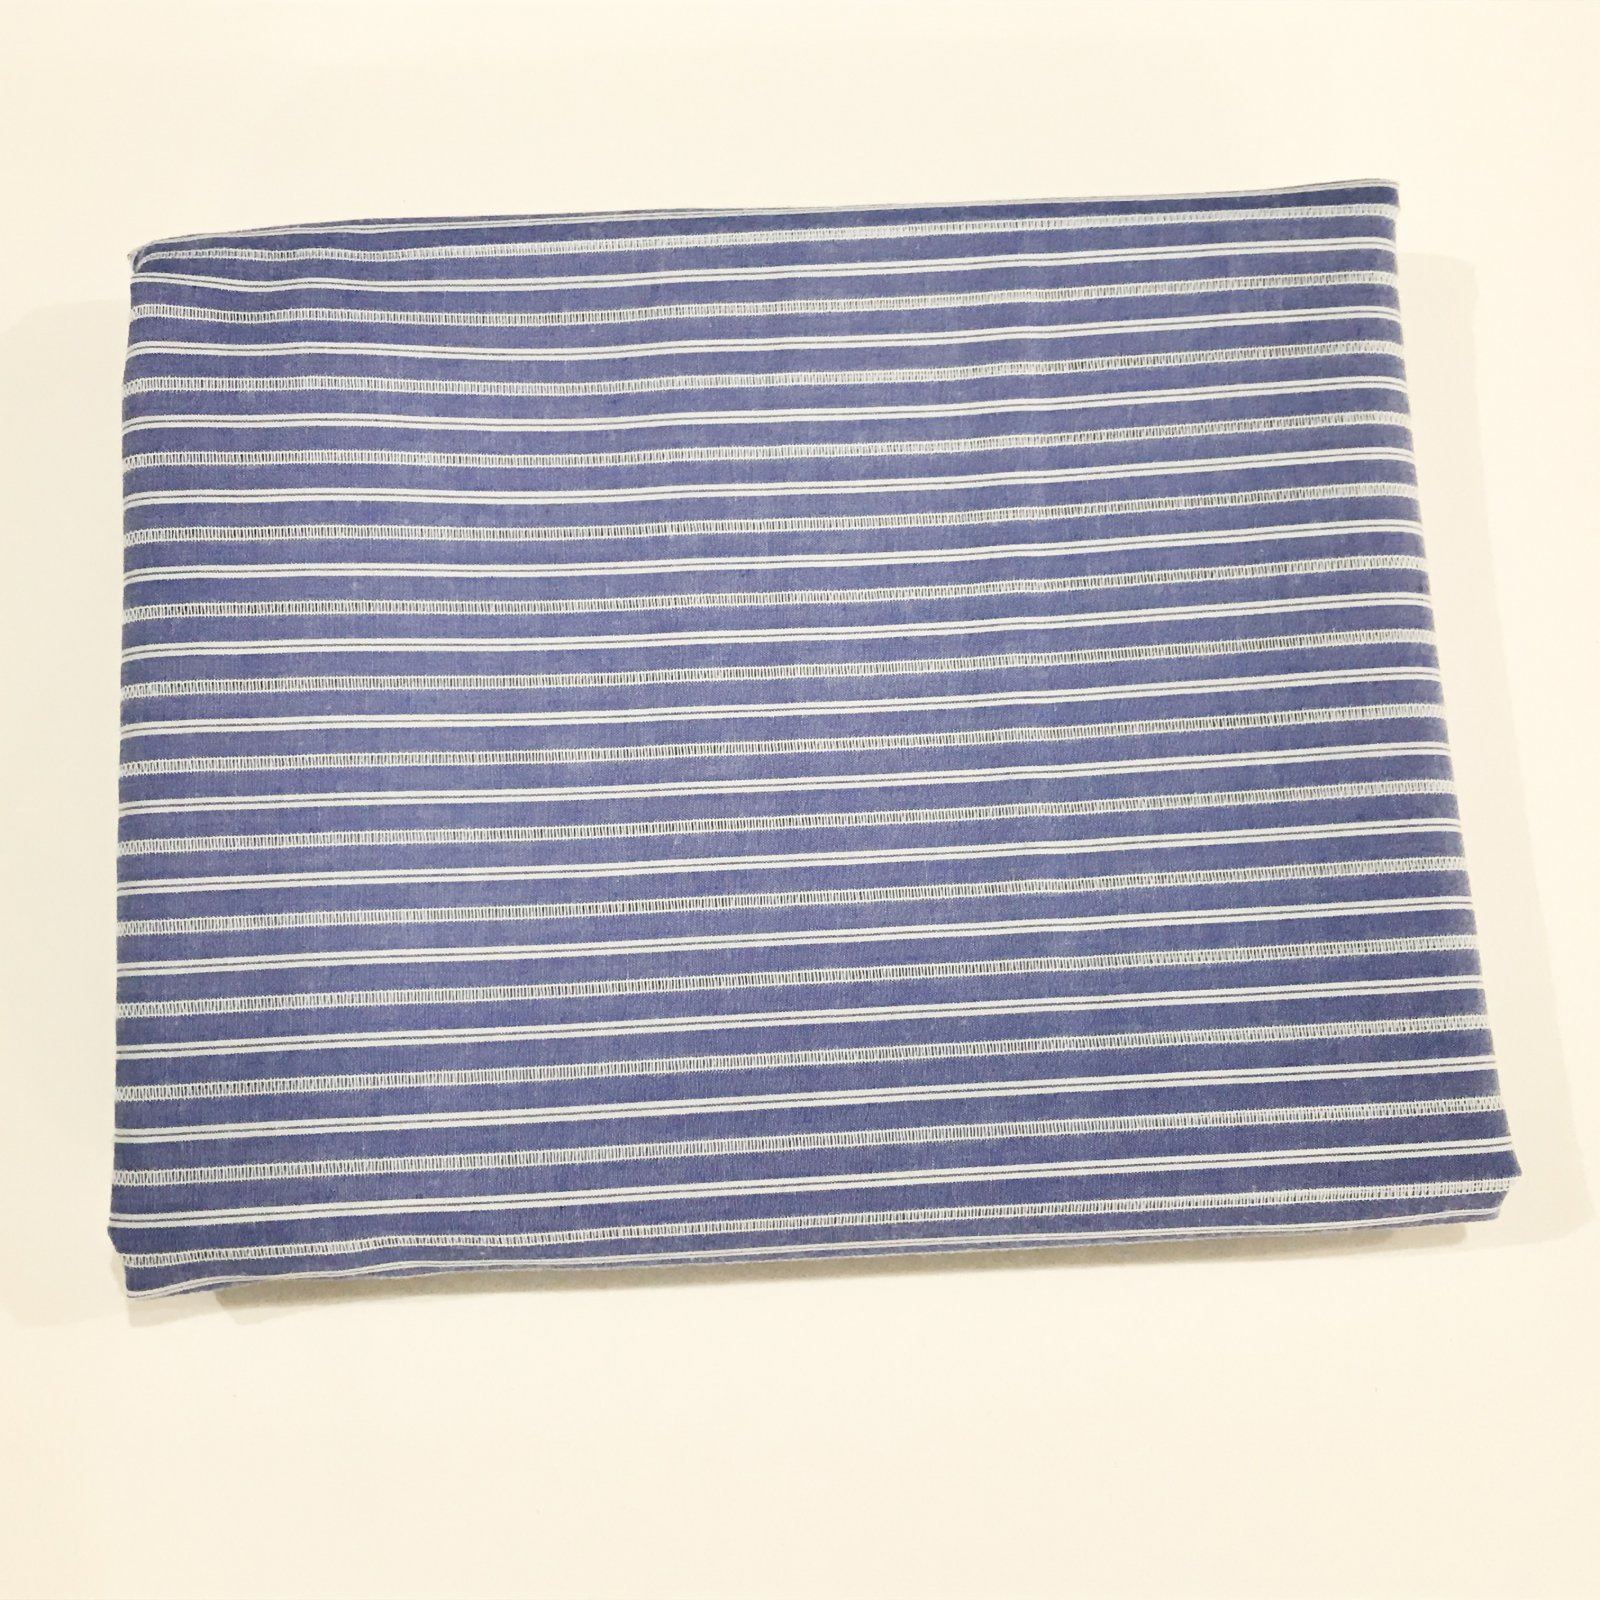 2 1/2 yards - Cotton - Blue Spaces Stripes